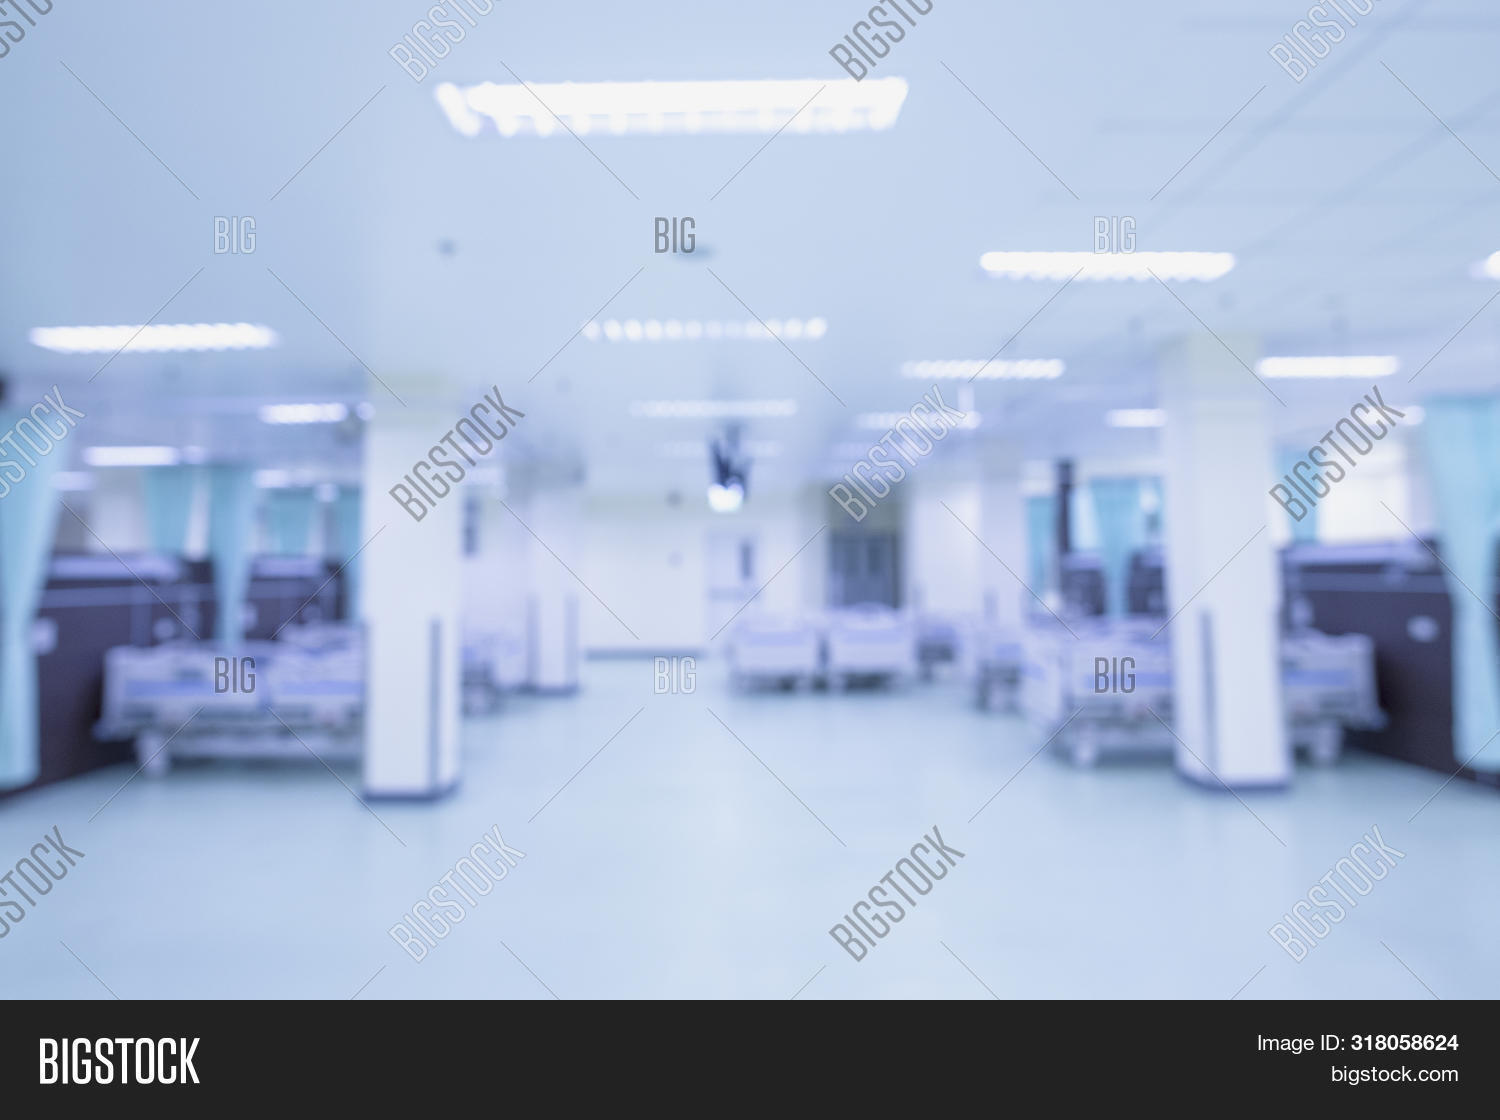 background,bed,blur,blurred,building,business,care,caucasian,chair,clean,clinic,comfortable,design,diagnosis,disease,doctor,emergency,empty,equipment,health,healthy,hospital,hospitalized,ill,illness,indoors,inside,interior,light,lying,medical,medicine,modern,nurse,nursing,patient,people,professional,recovery,rest,room,senior,sick,sickness,technology,treatment,unconscious,ward,white